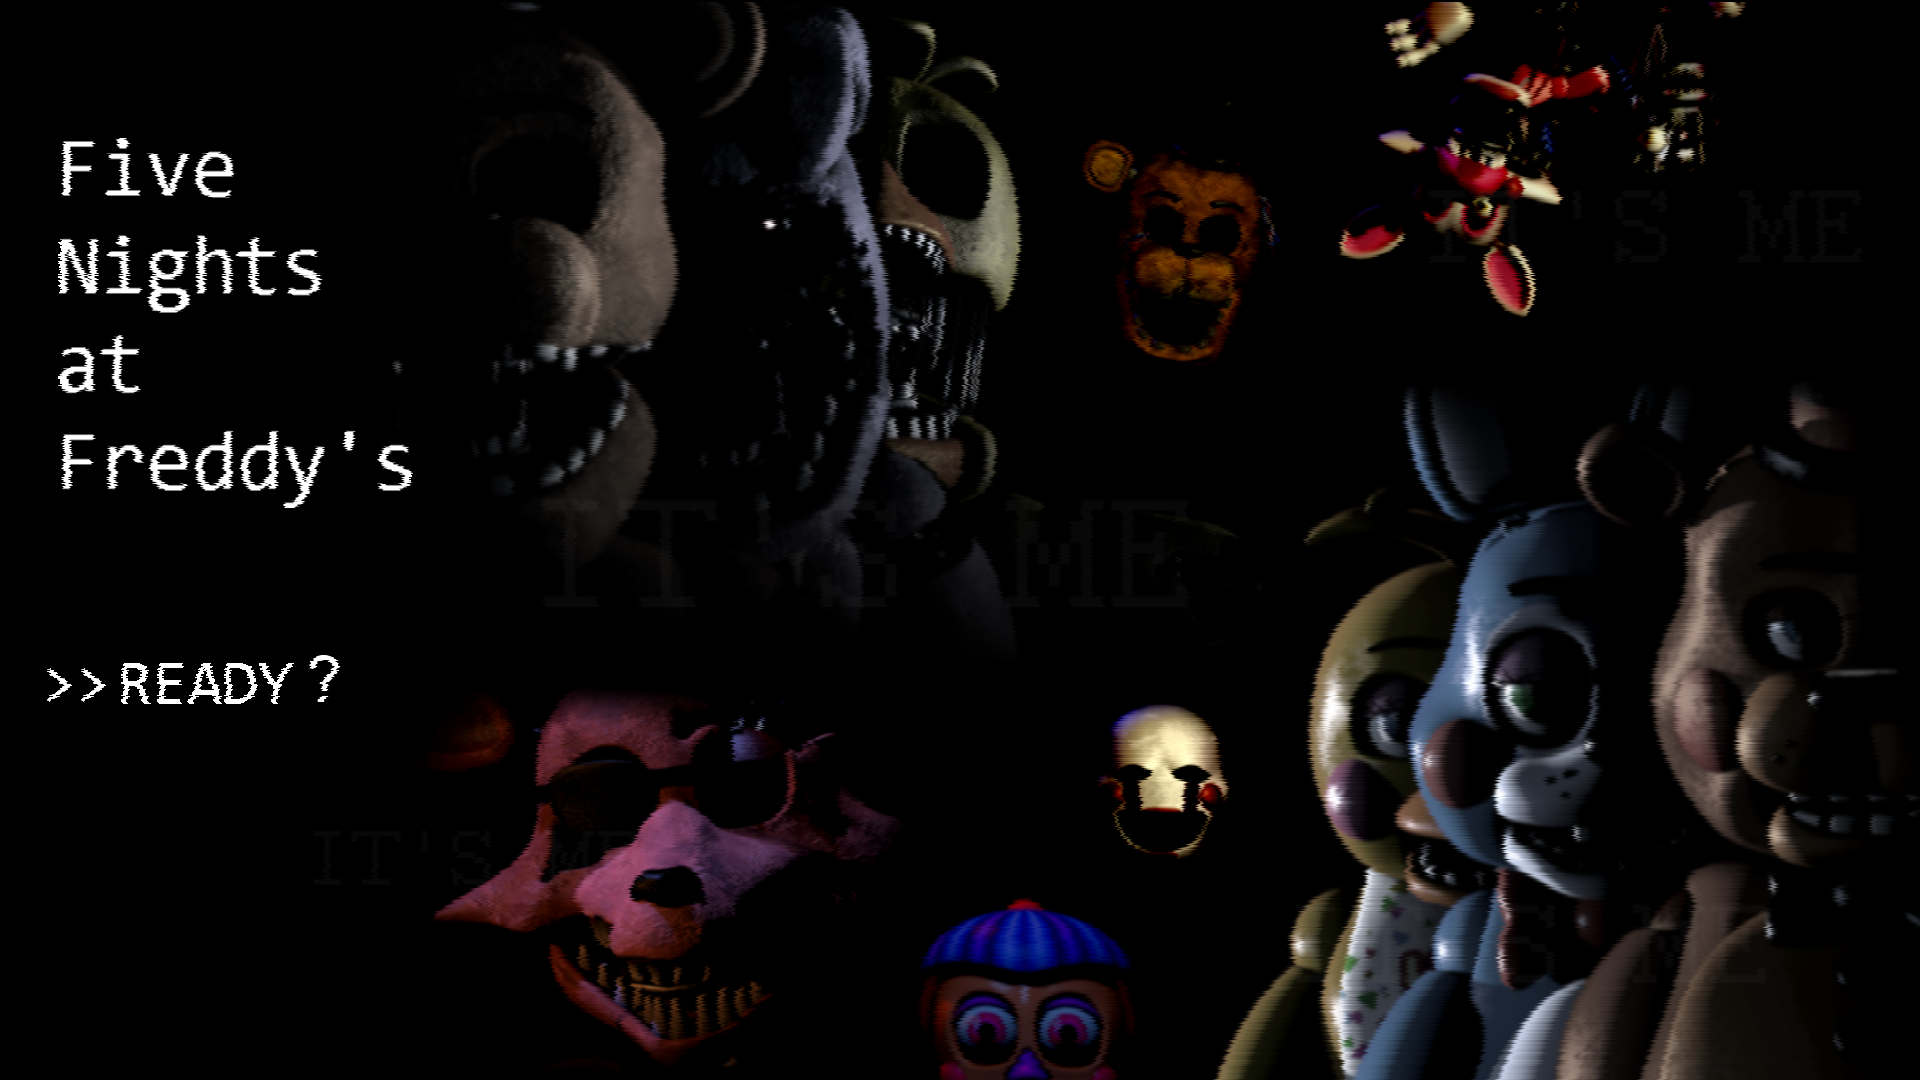 Free Download Five Nights At Freddys Wallpaper By Thatonepyotr On